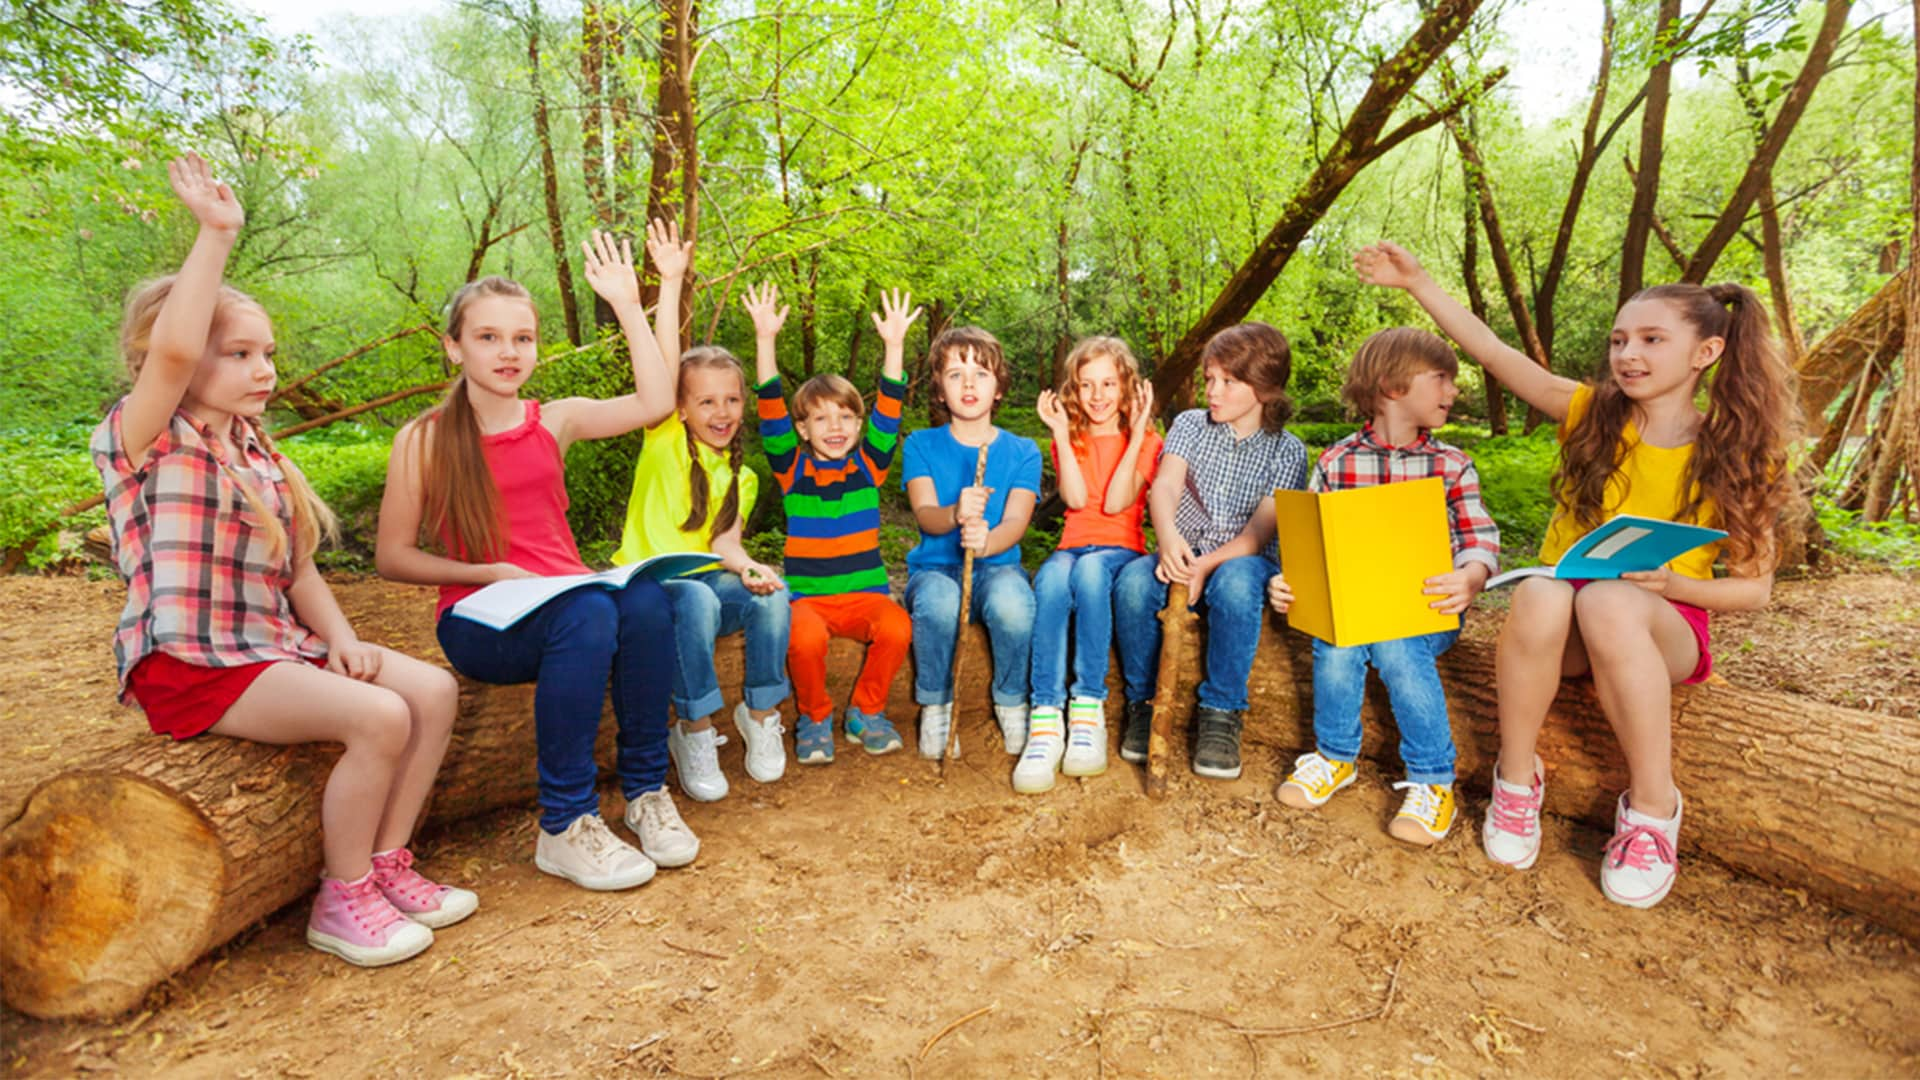 Getting to Know You Best Questions to Ask on Summer Camp Applications